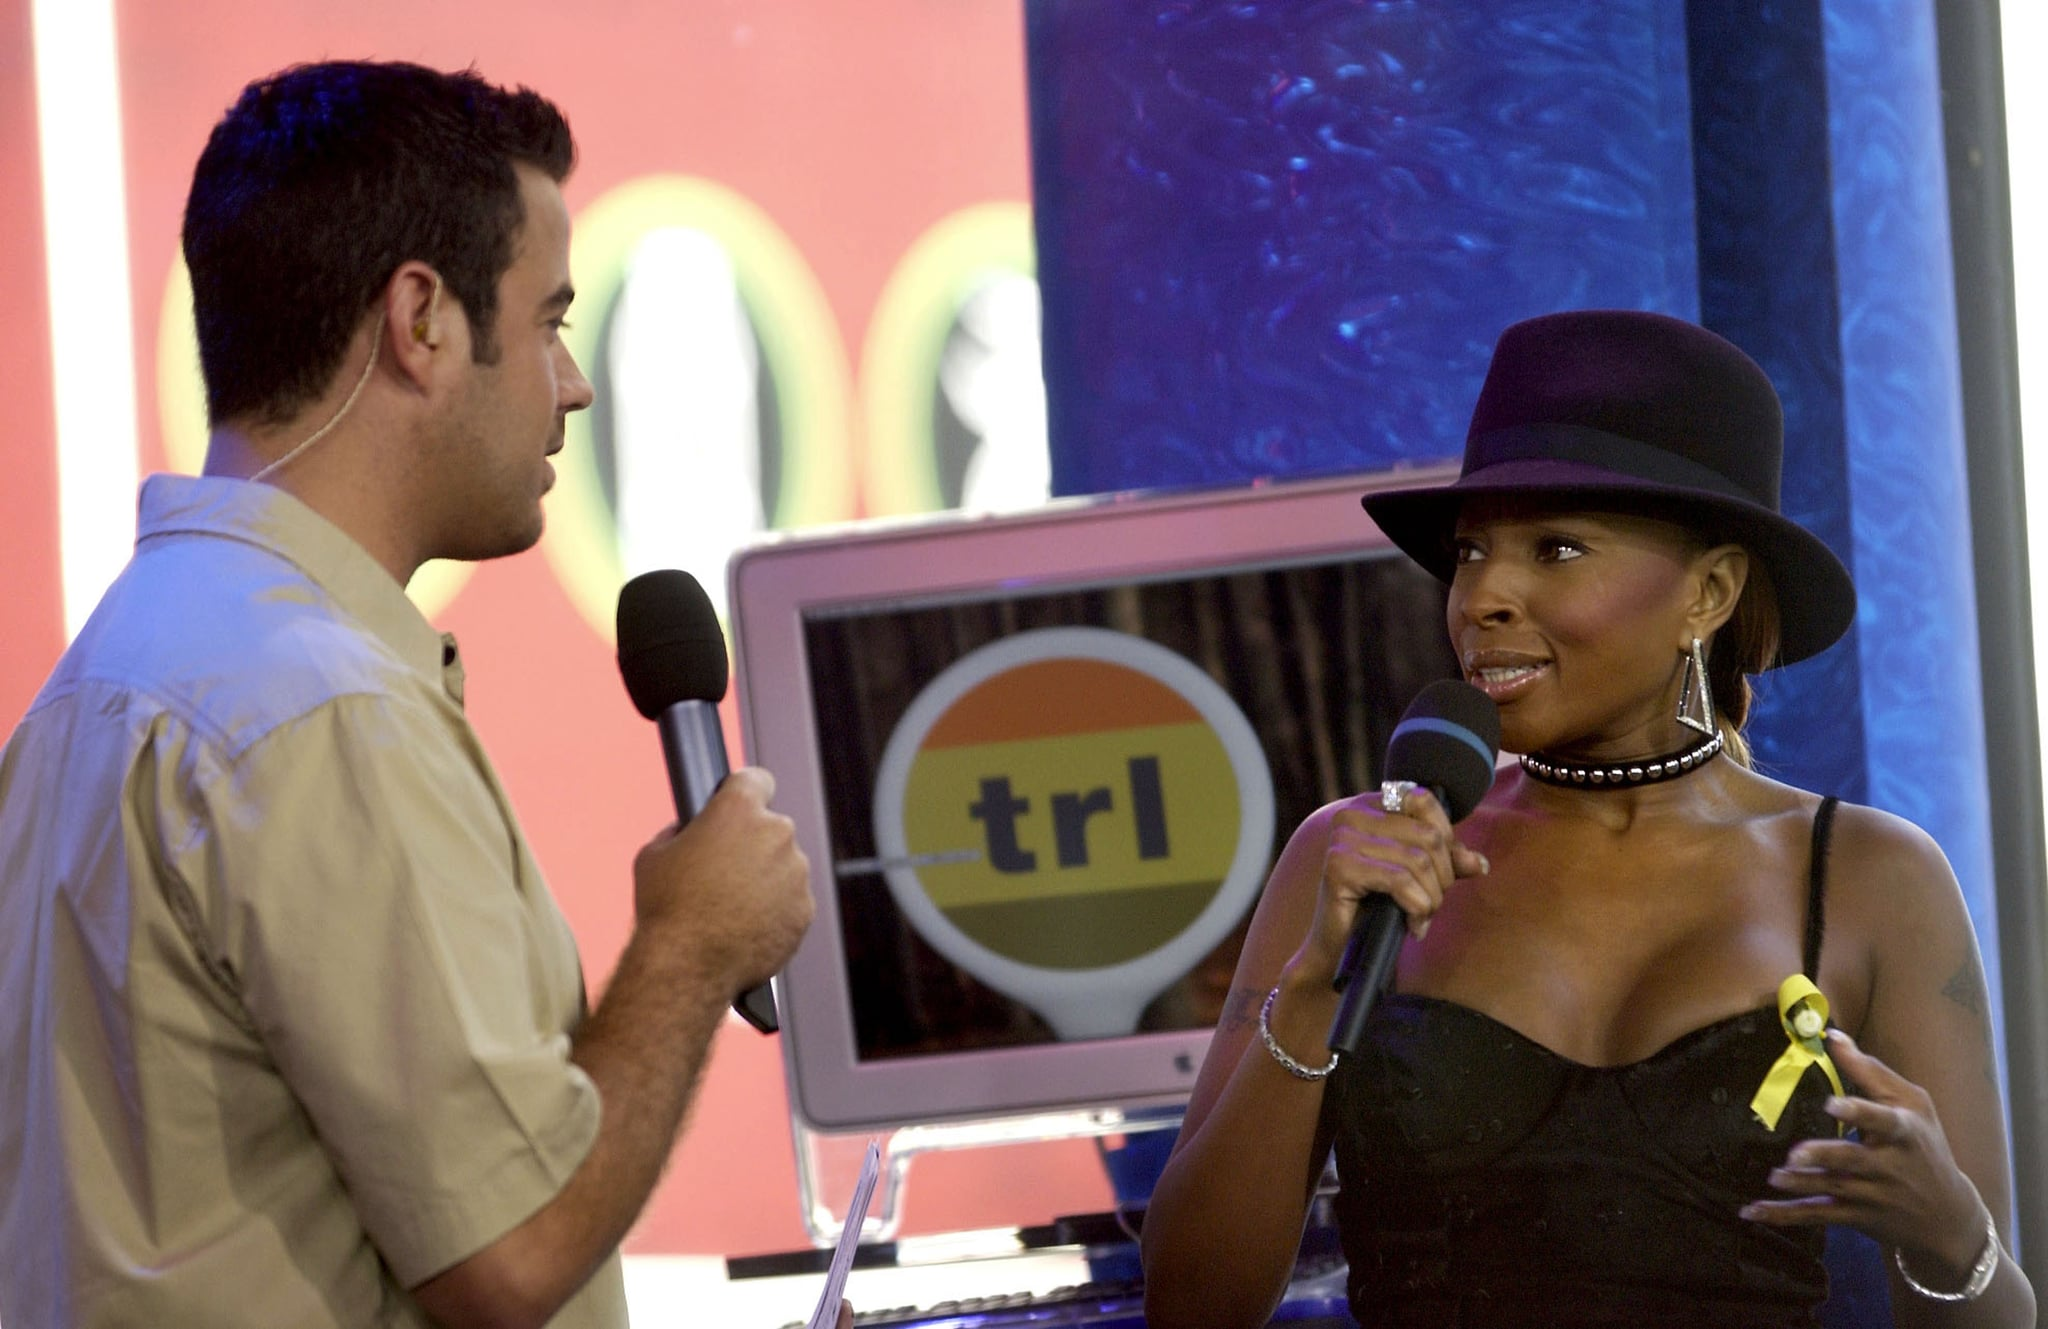 Mtv Trl Pictures Popsugar Celebrity